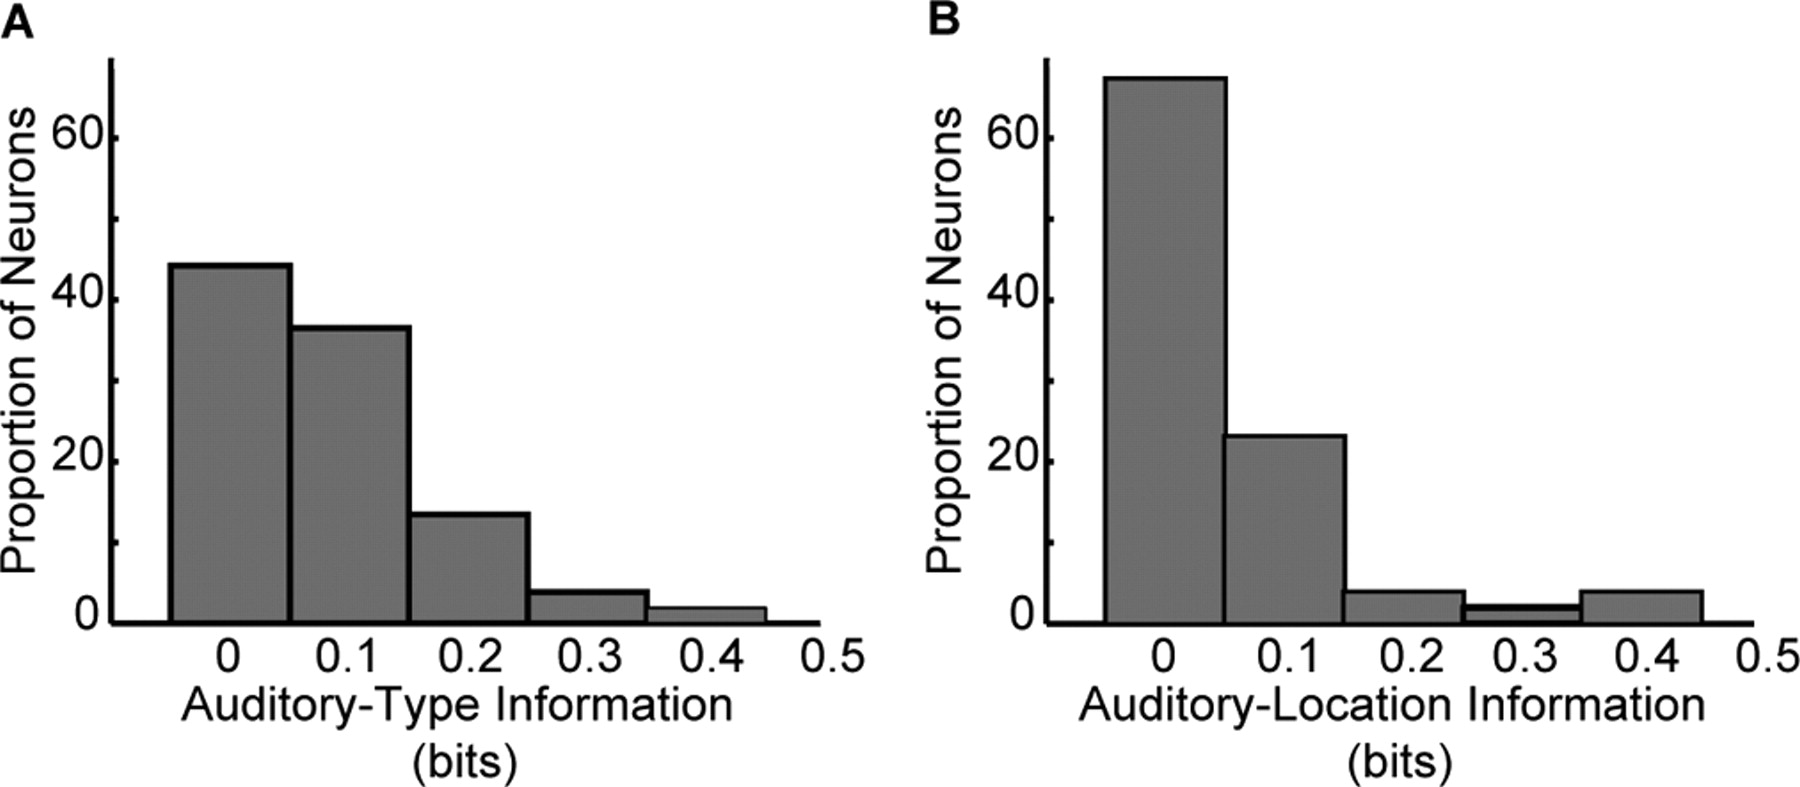 Selectivity for the spatial and nonspatial attributes of auditory download figure pooptronica